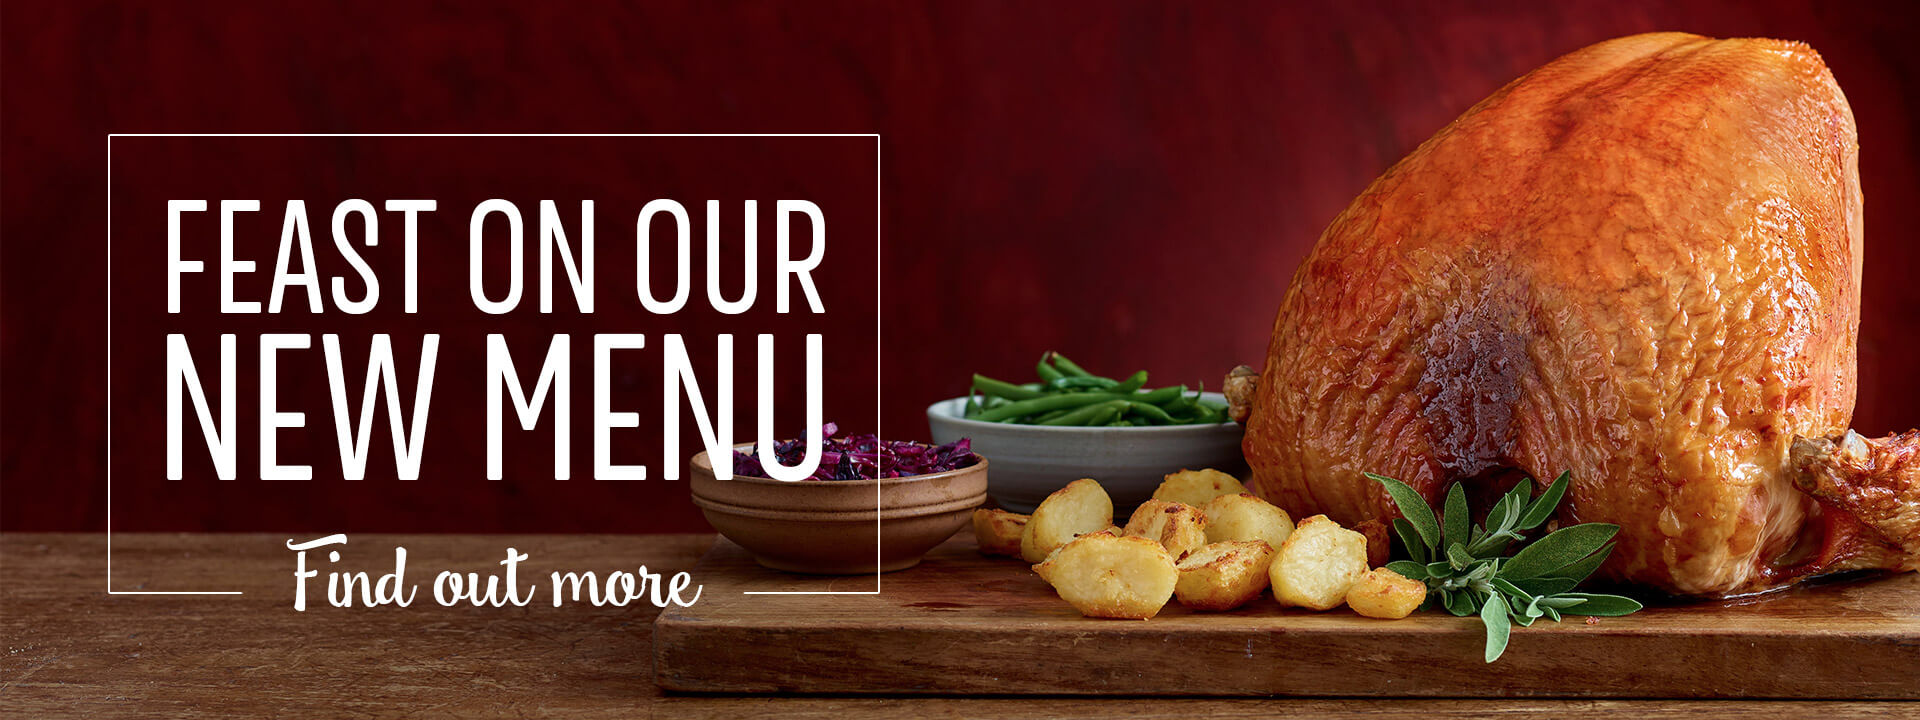 New Menus at Toby Carvery